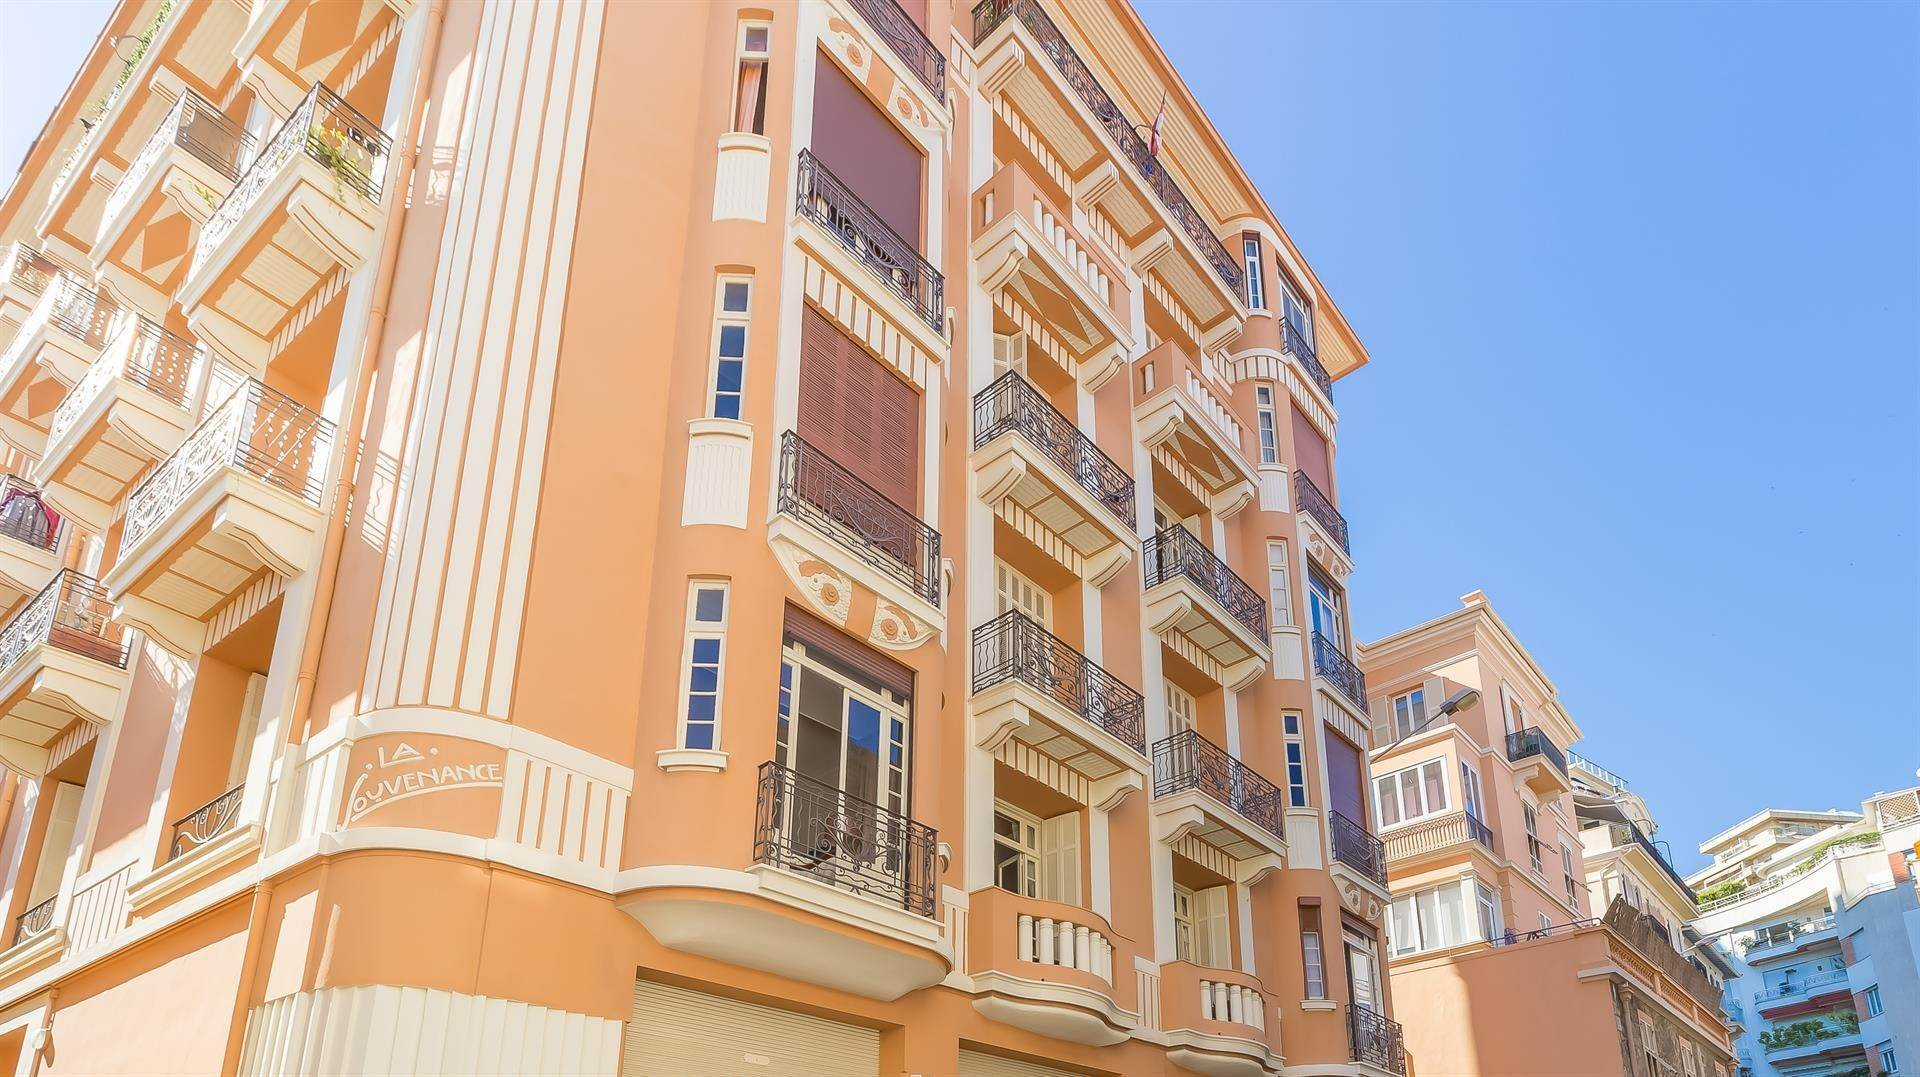 8. Residence/Apartment for Sale at Large 6 roomed apartment in the Condamine area 98000 Monaco